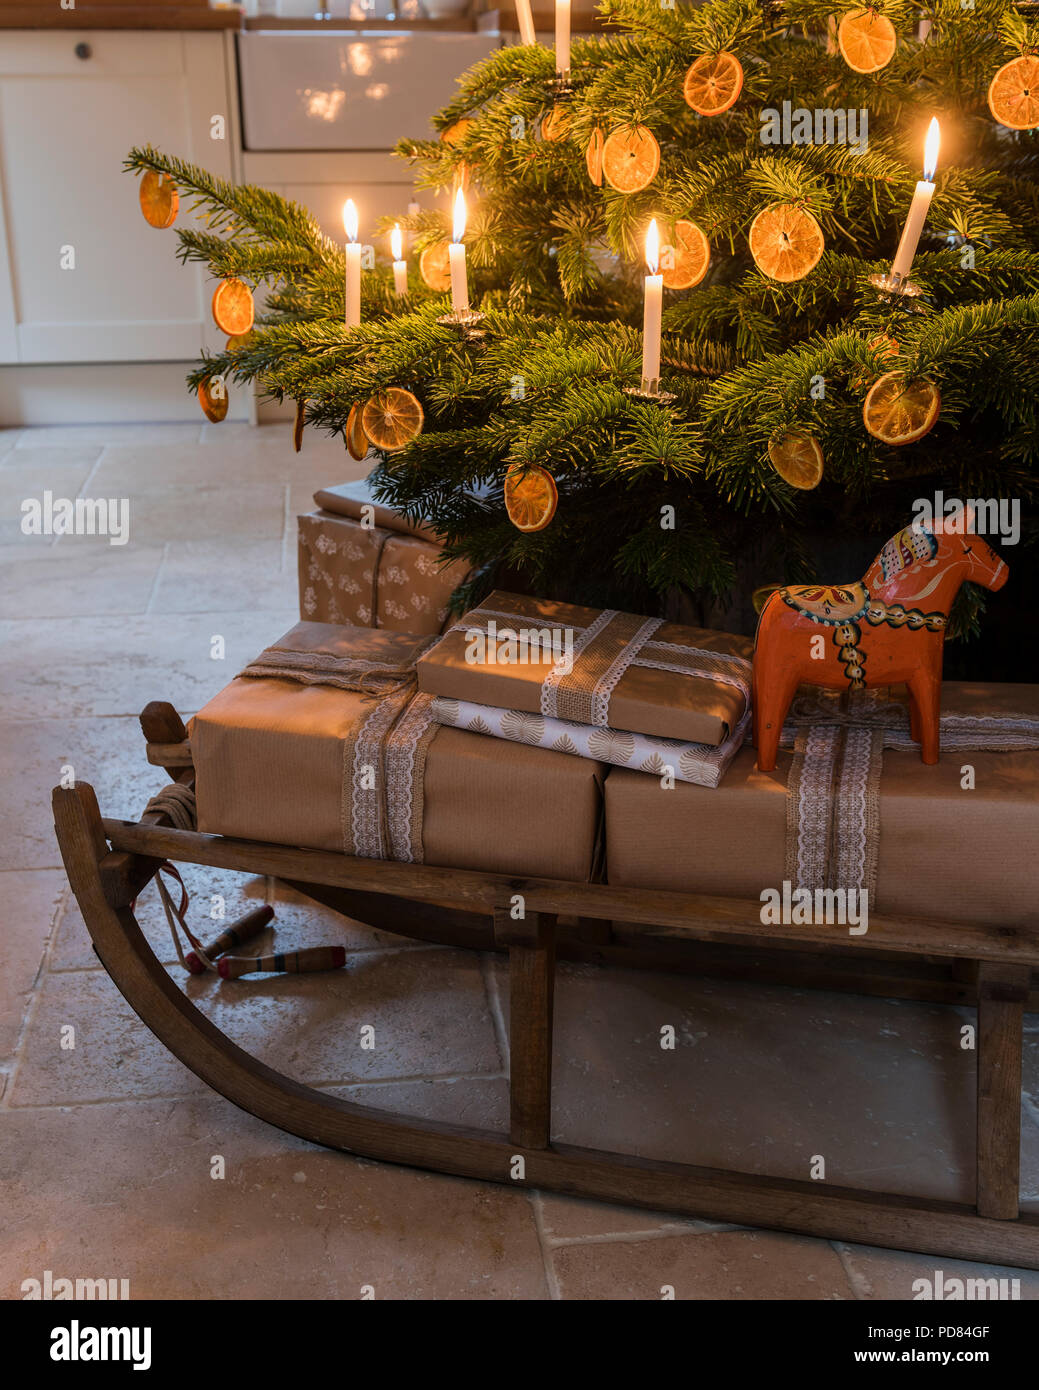 Wrapped presents on a wooden sledge underneath candle lit christmas tree - Stock Image